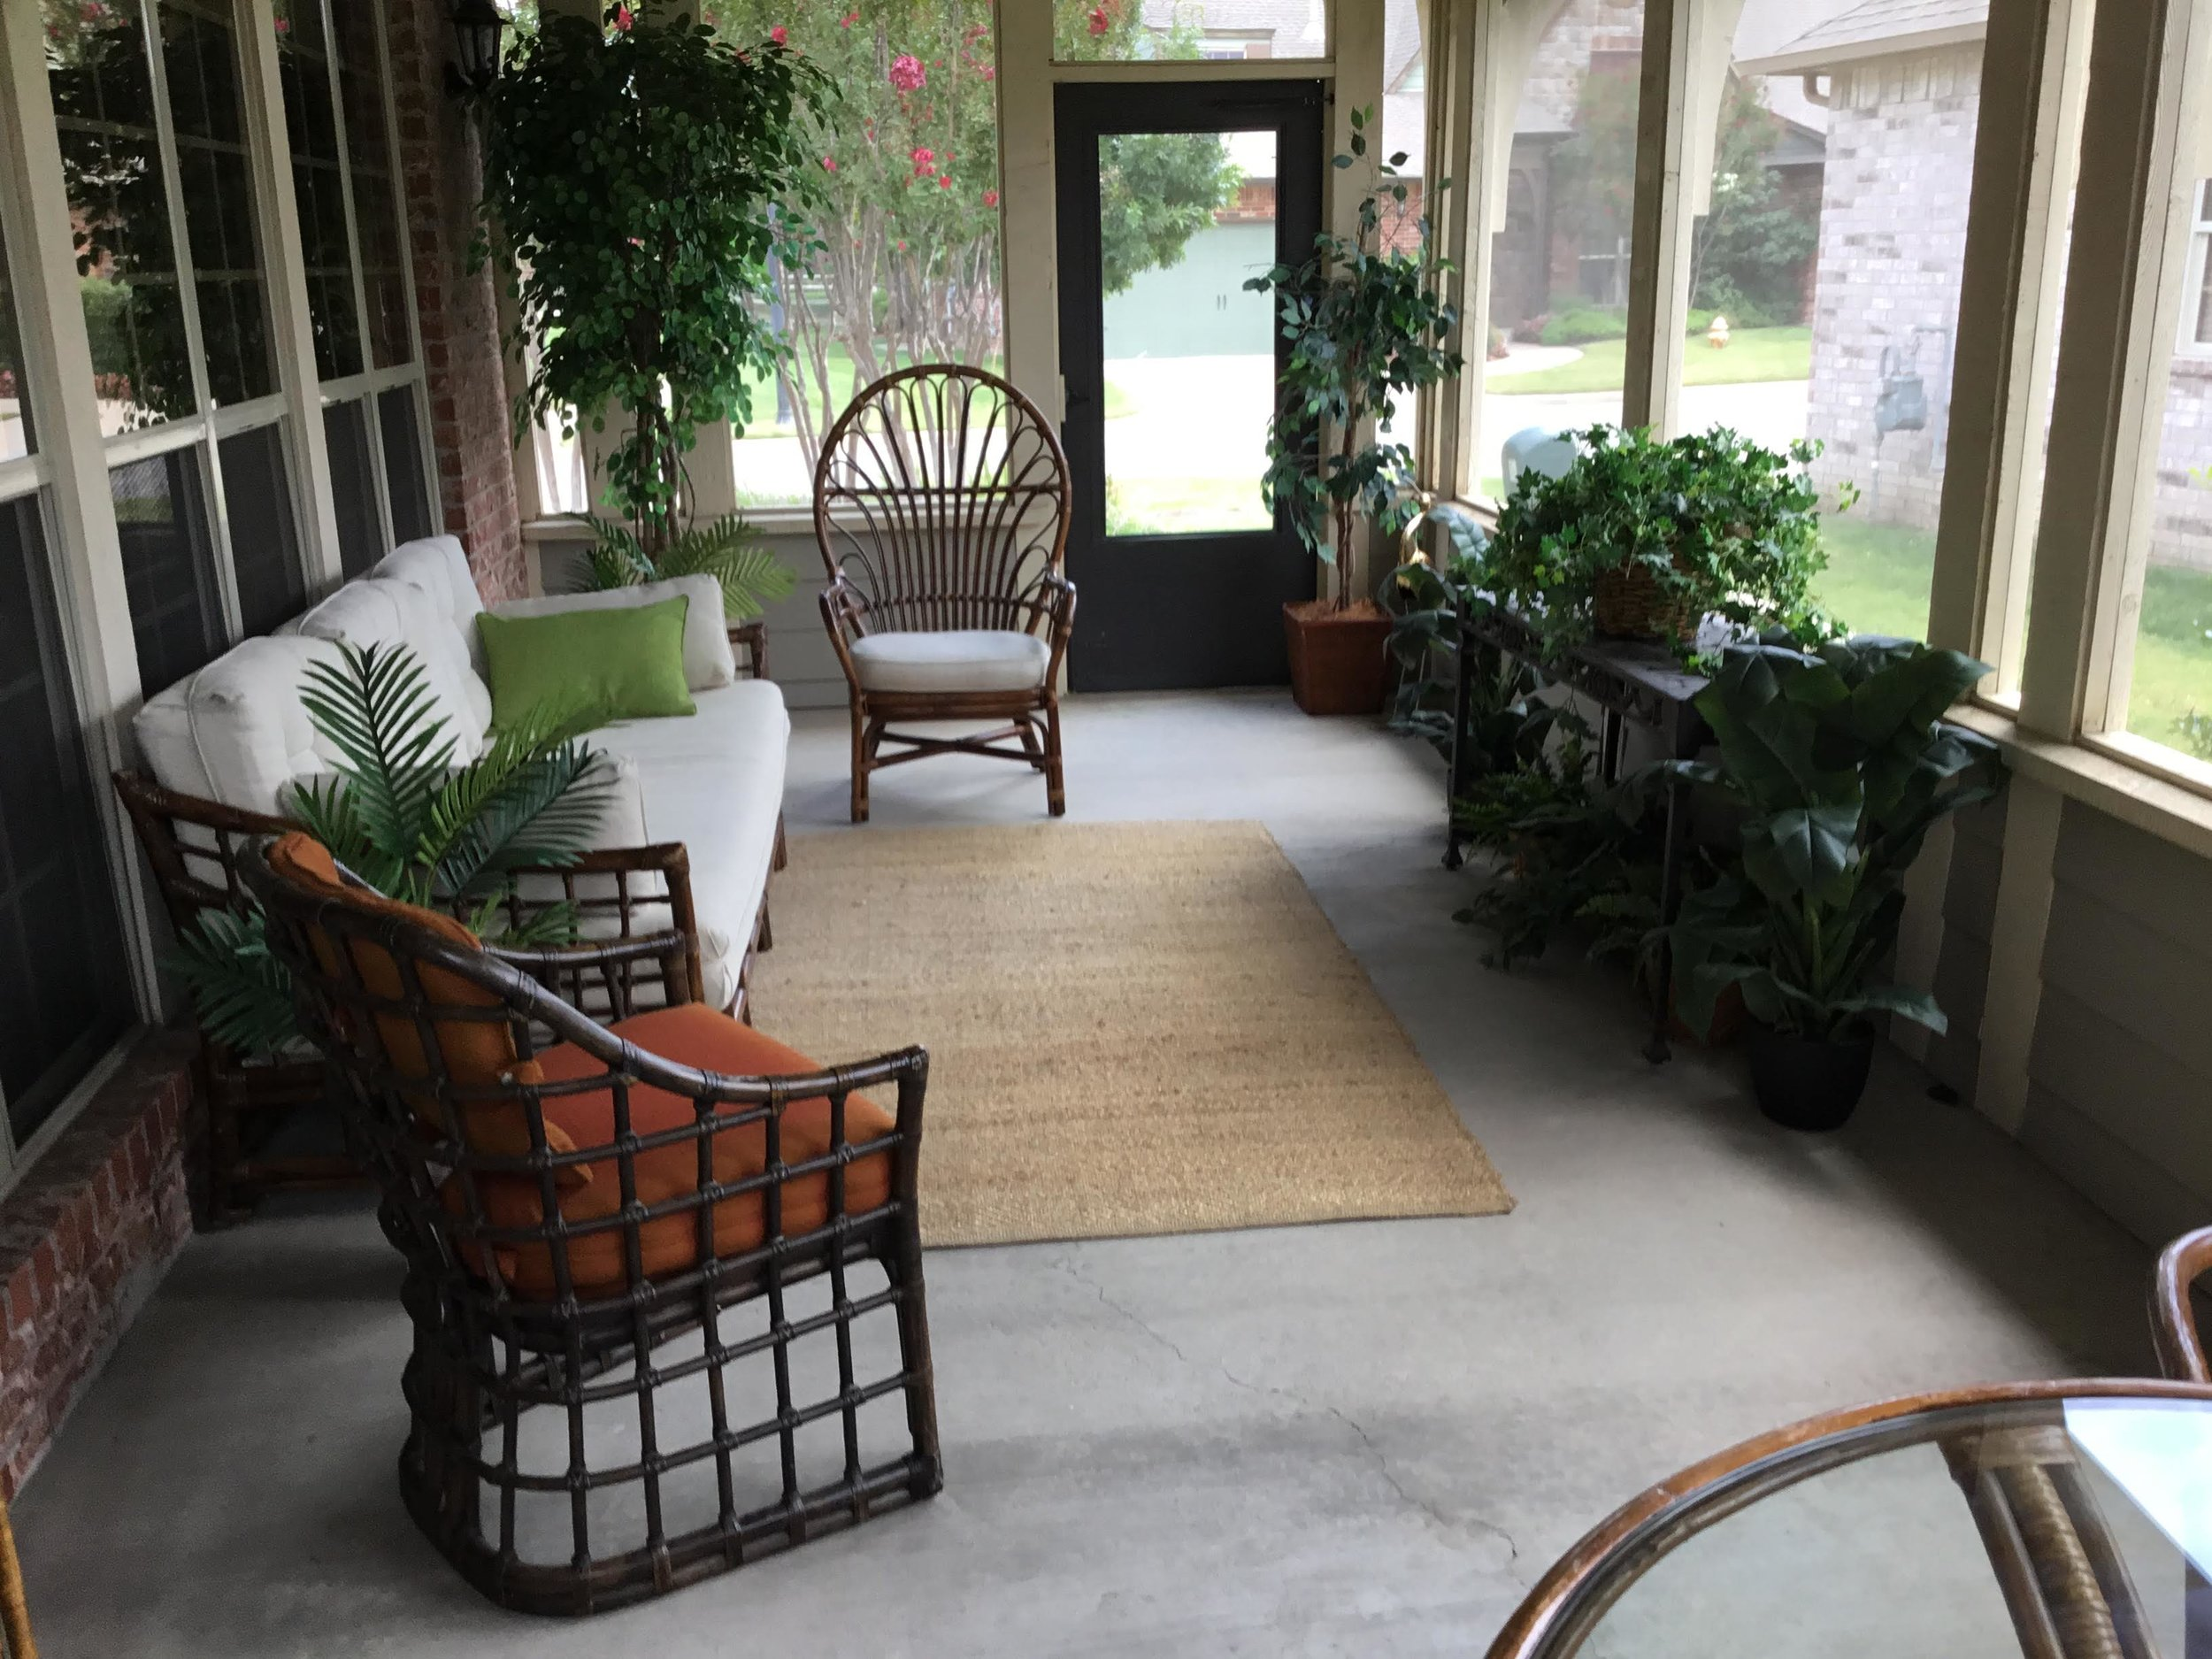 Staging Tulsa - Zarrow Pointe Villas Patio1.jpg